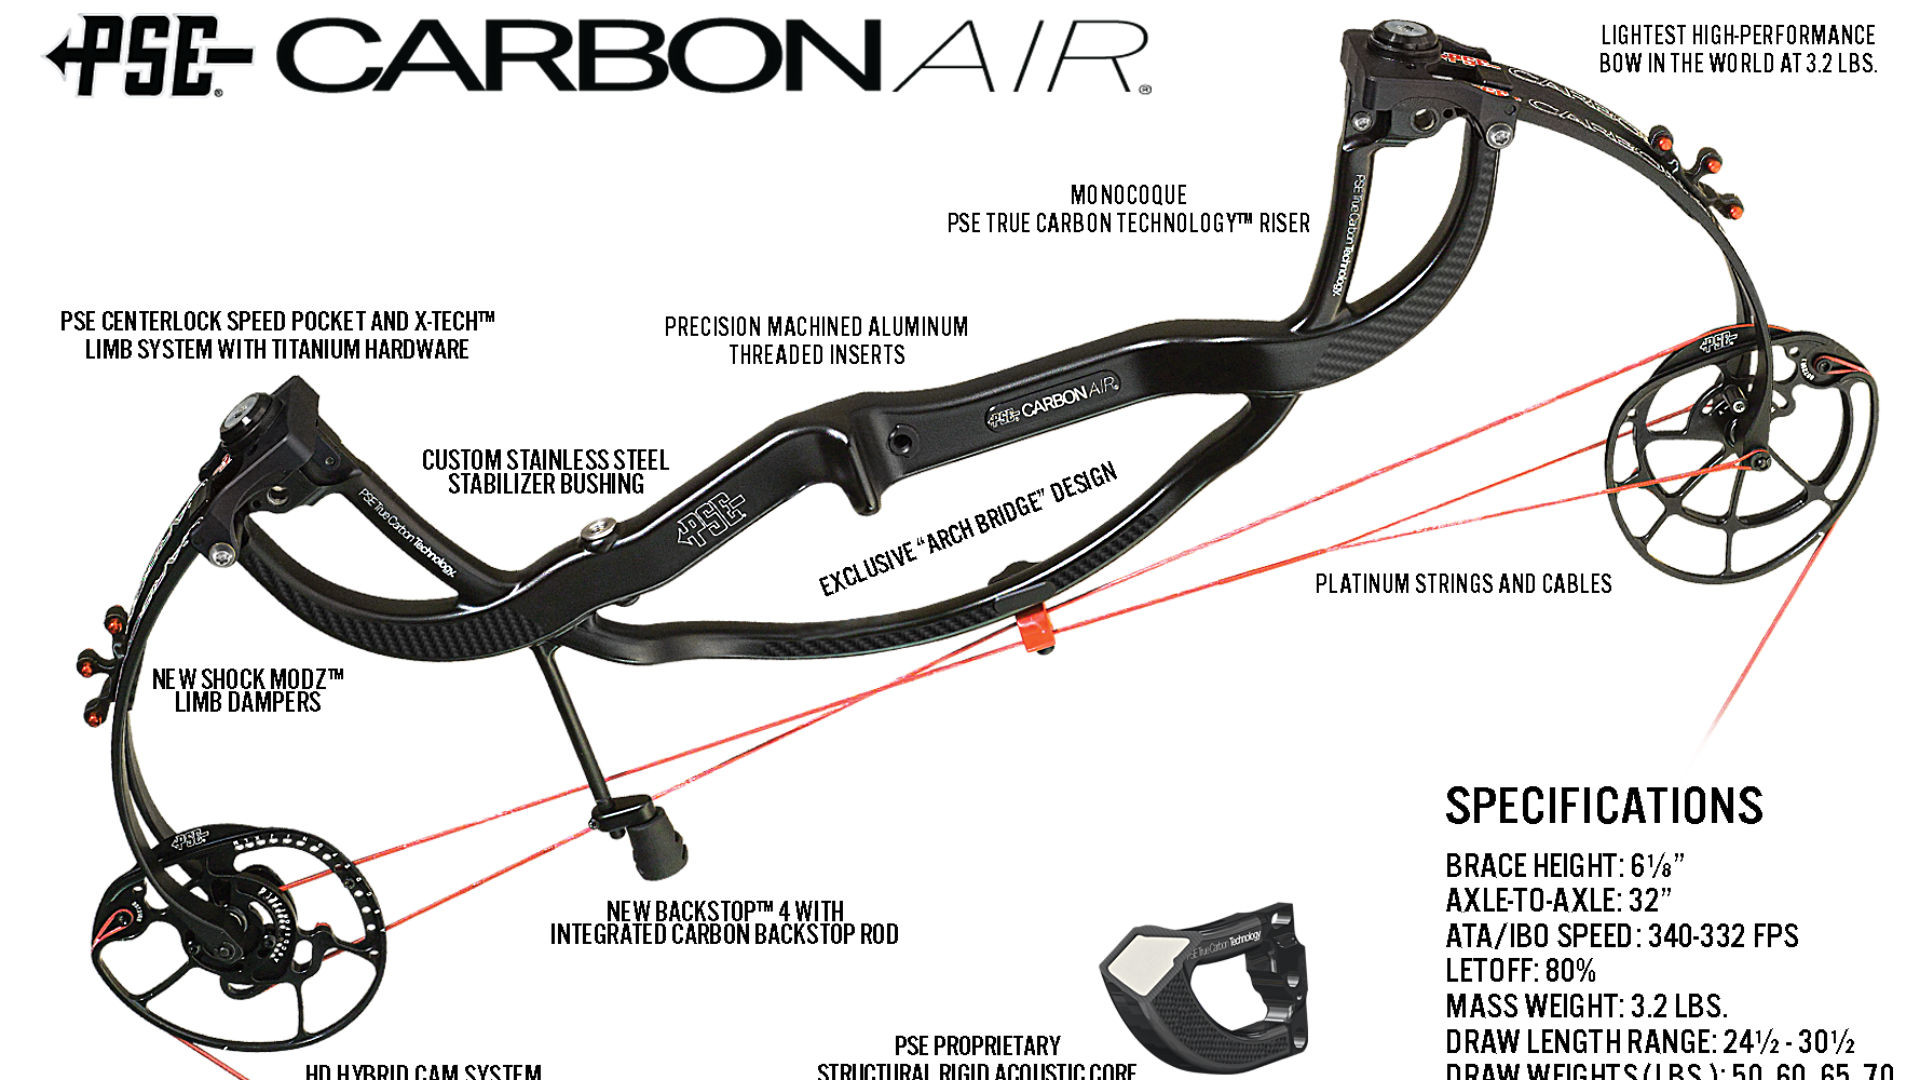 Res: 1920x1080, PSE releasing new, lightweight Carbon Air compound bow | Other Sports |  Sporting News